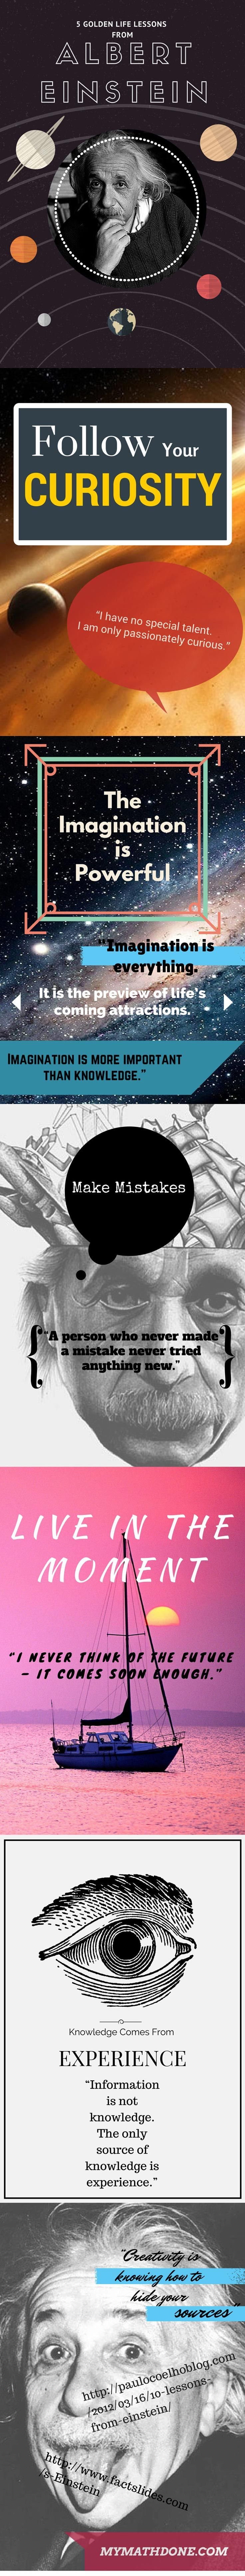 Famous Einstein quotes abound online. But – Einstein never said most of them! Here's a fun infographic of real Einstein quotes and the life lessons gleaned. Click through to the blog to learn which Einstein quotes are fake!